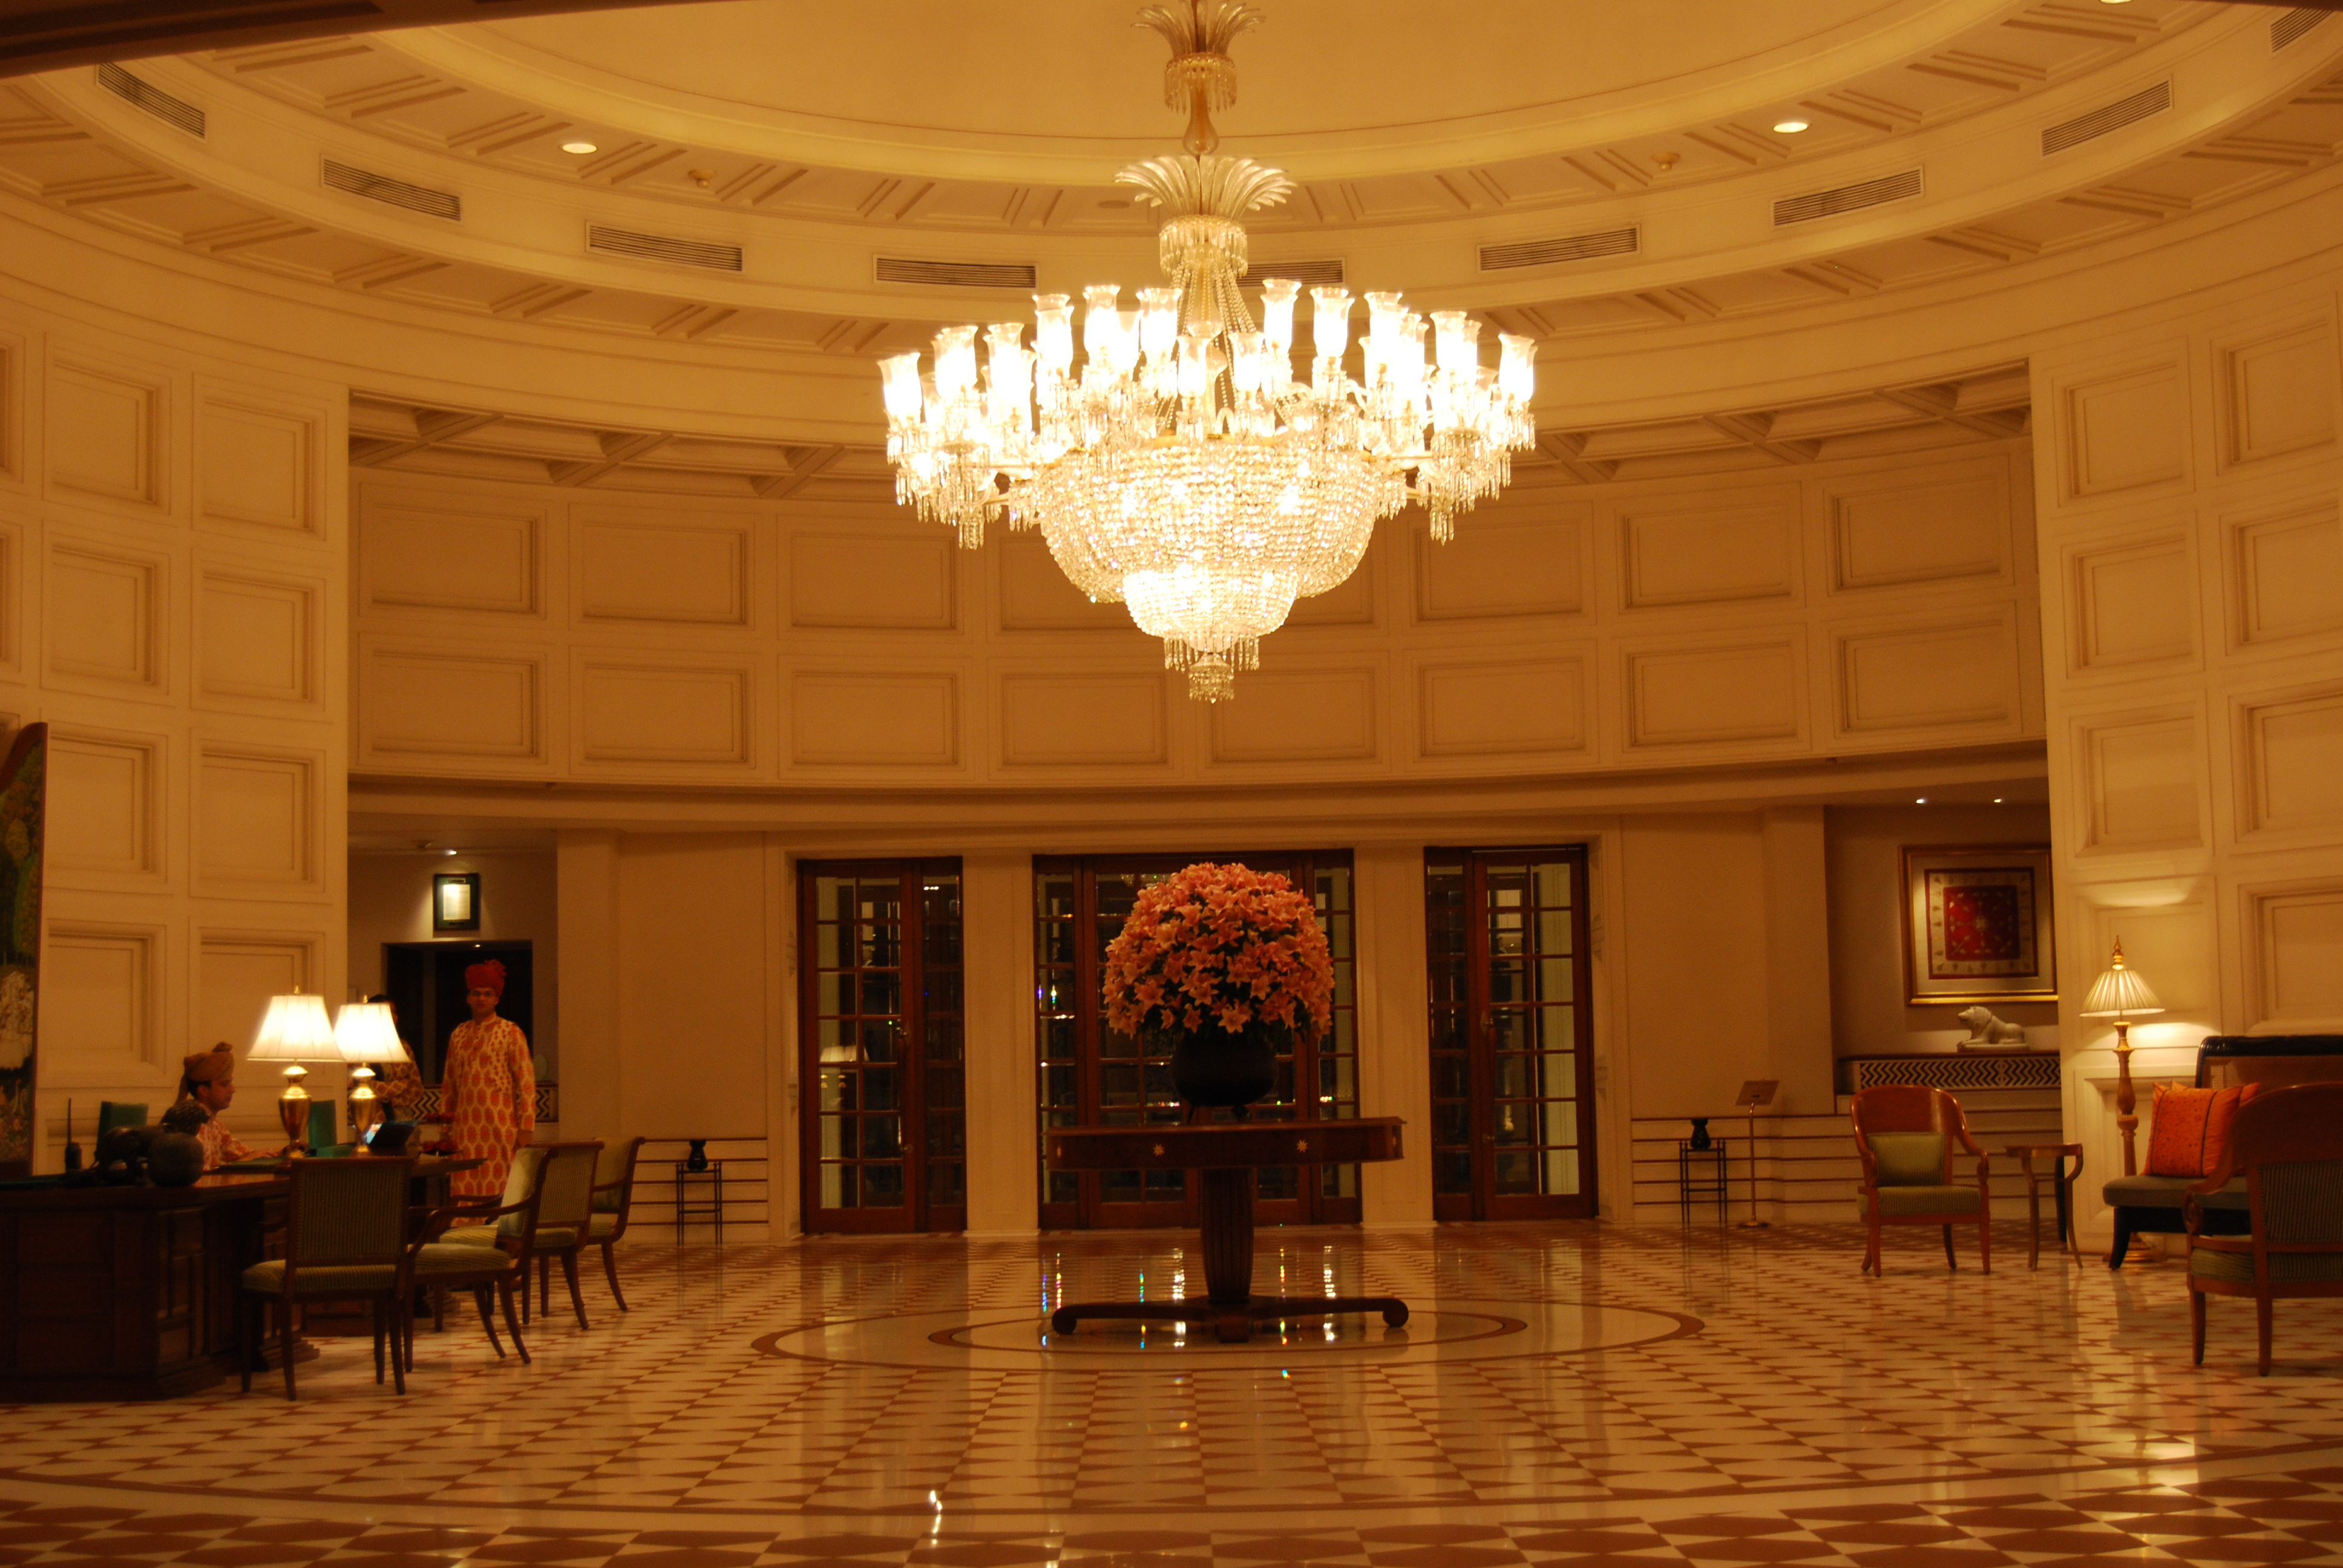 Lobby at The Oberoi Amarvilas, Agra